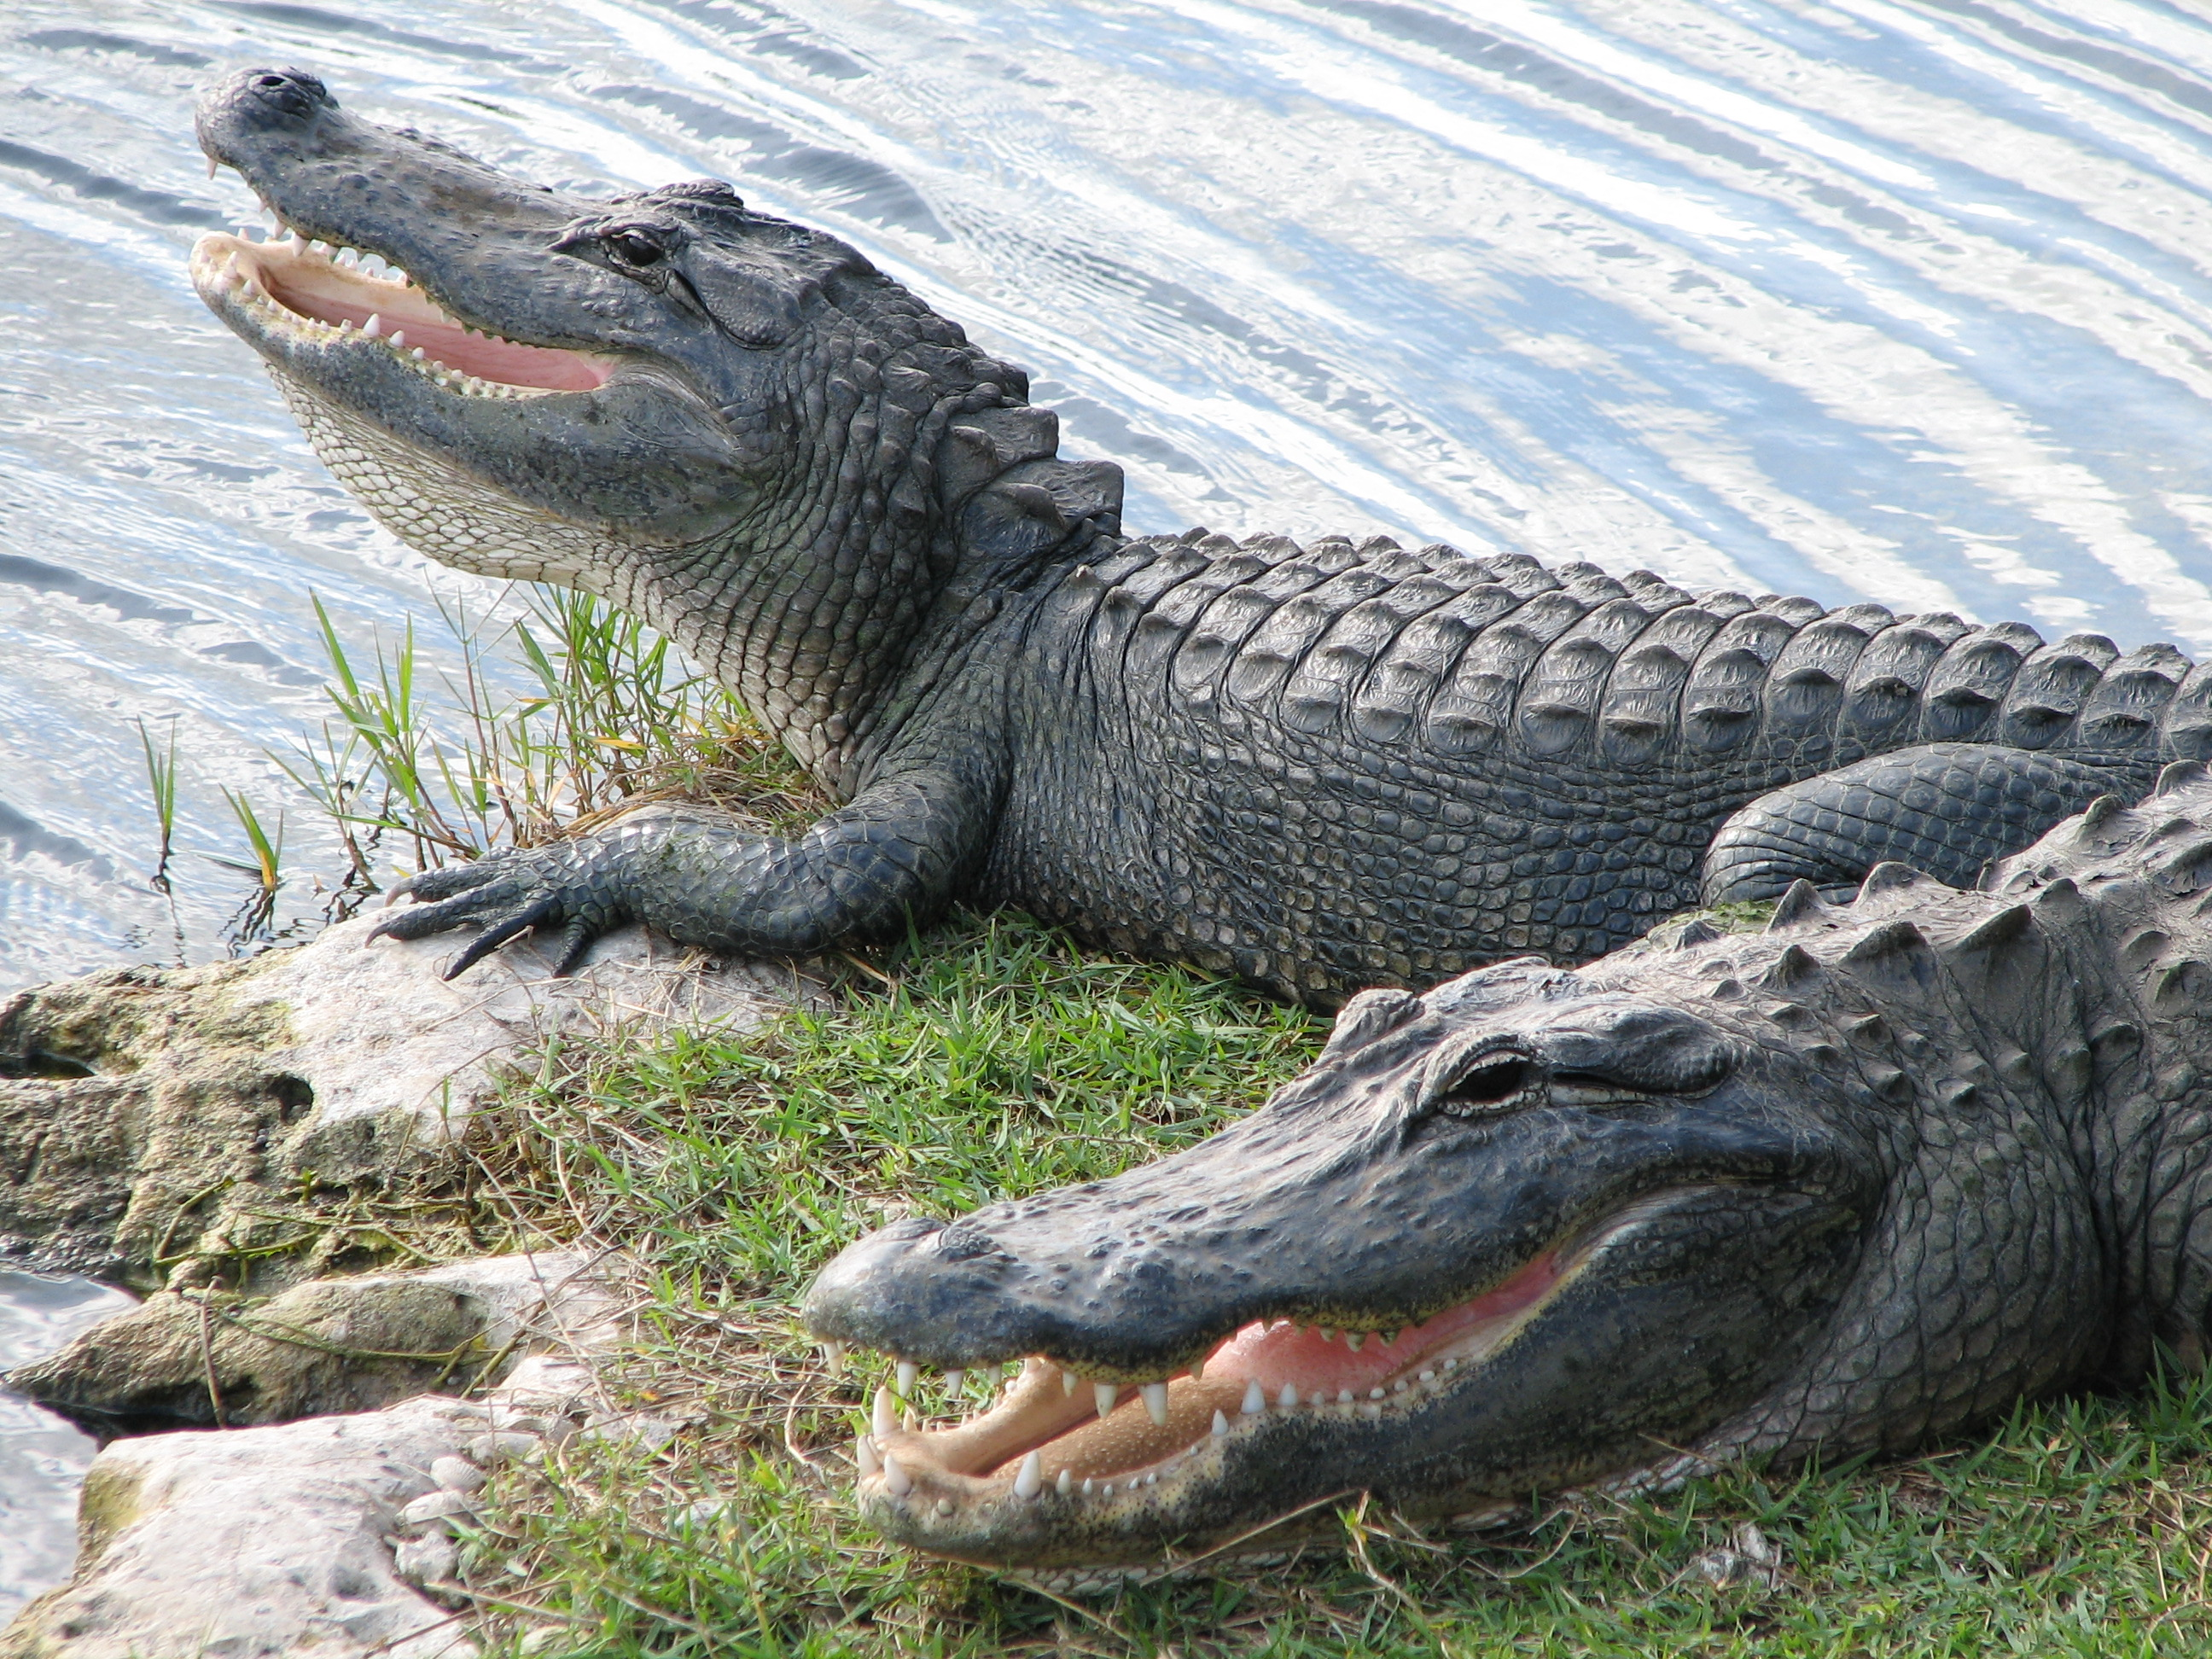 alligators in gulf coast waters